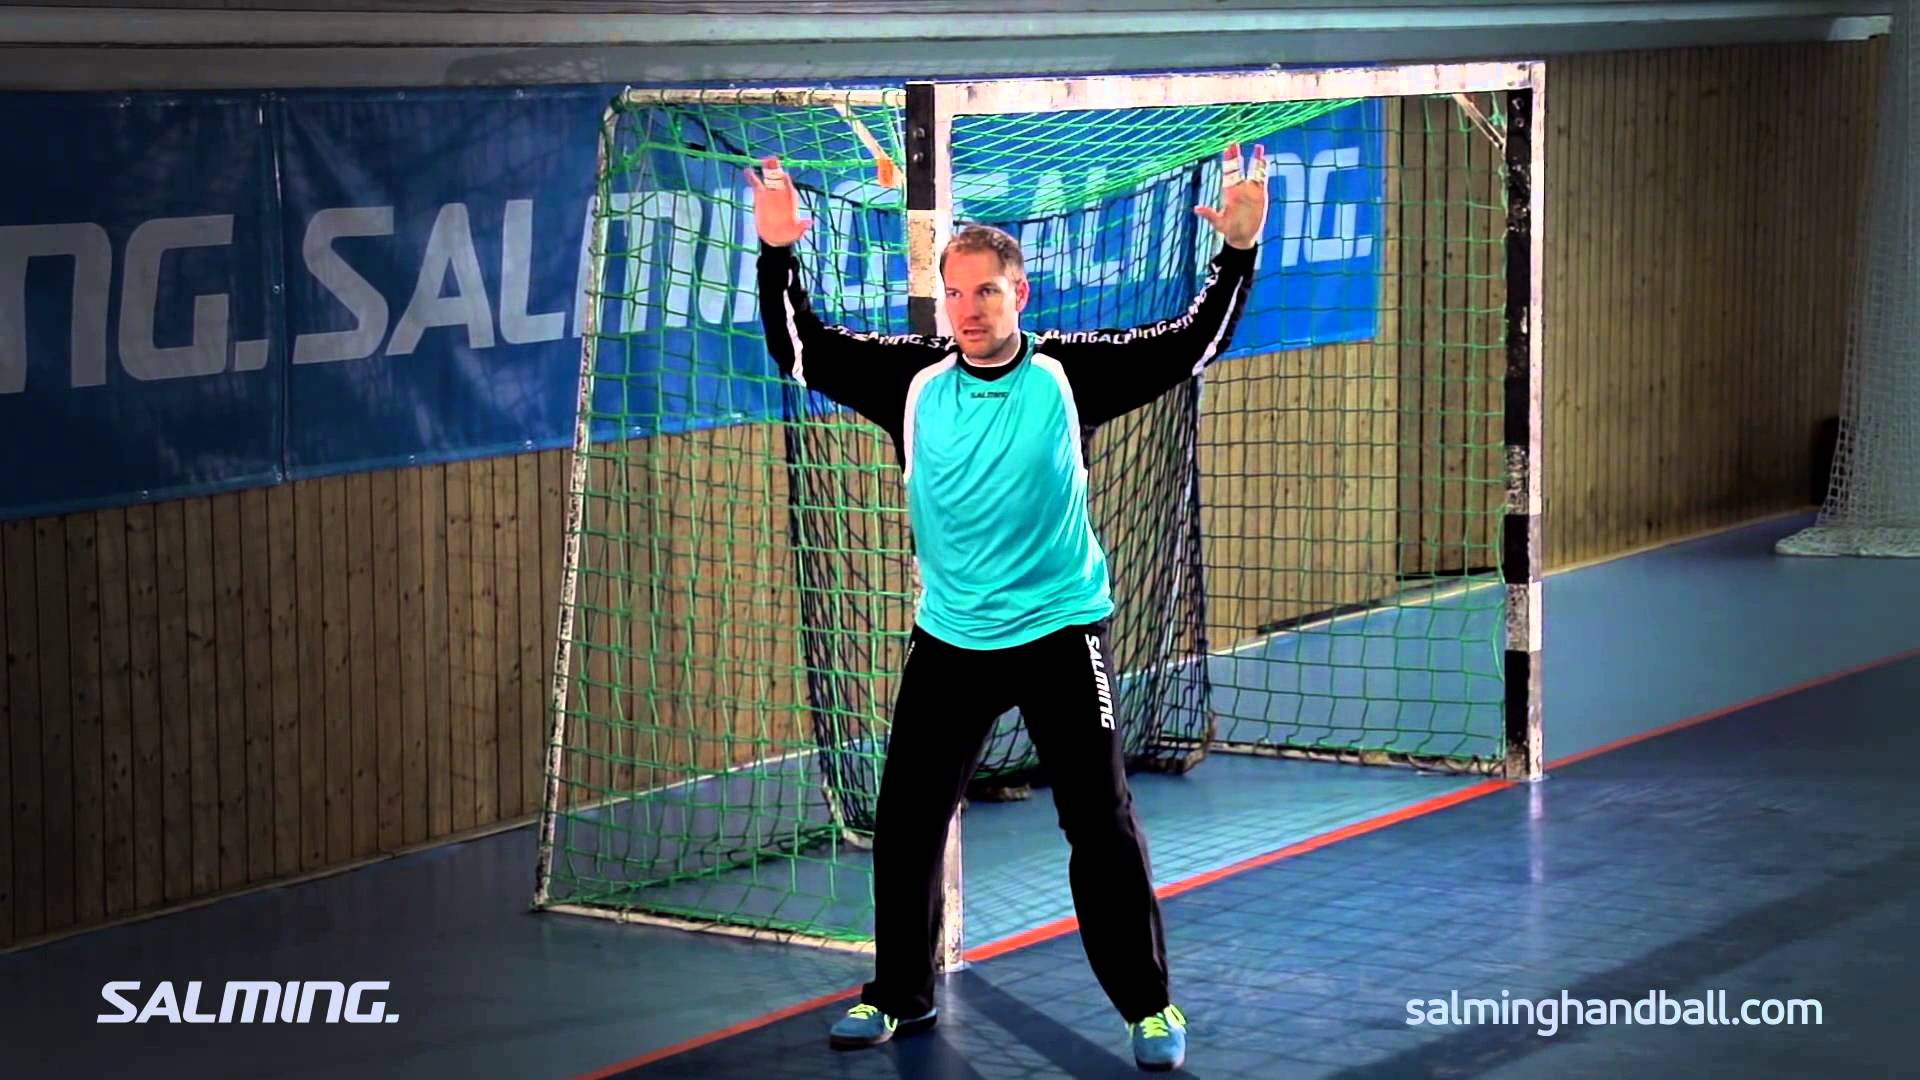 Salming Handball Academy - Goalie - Shots from the wing - YouTube